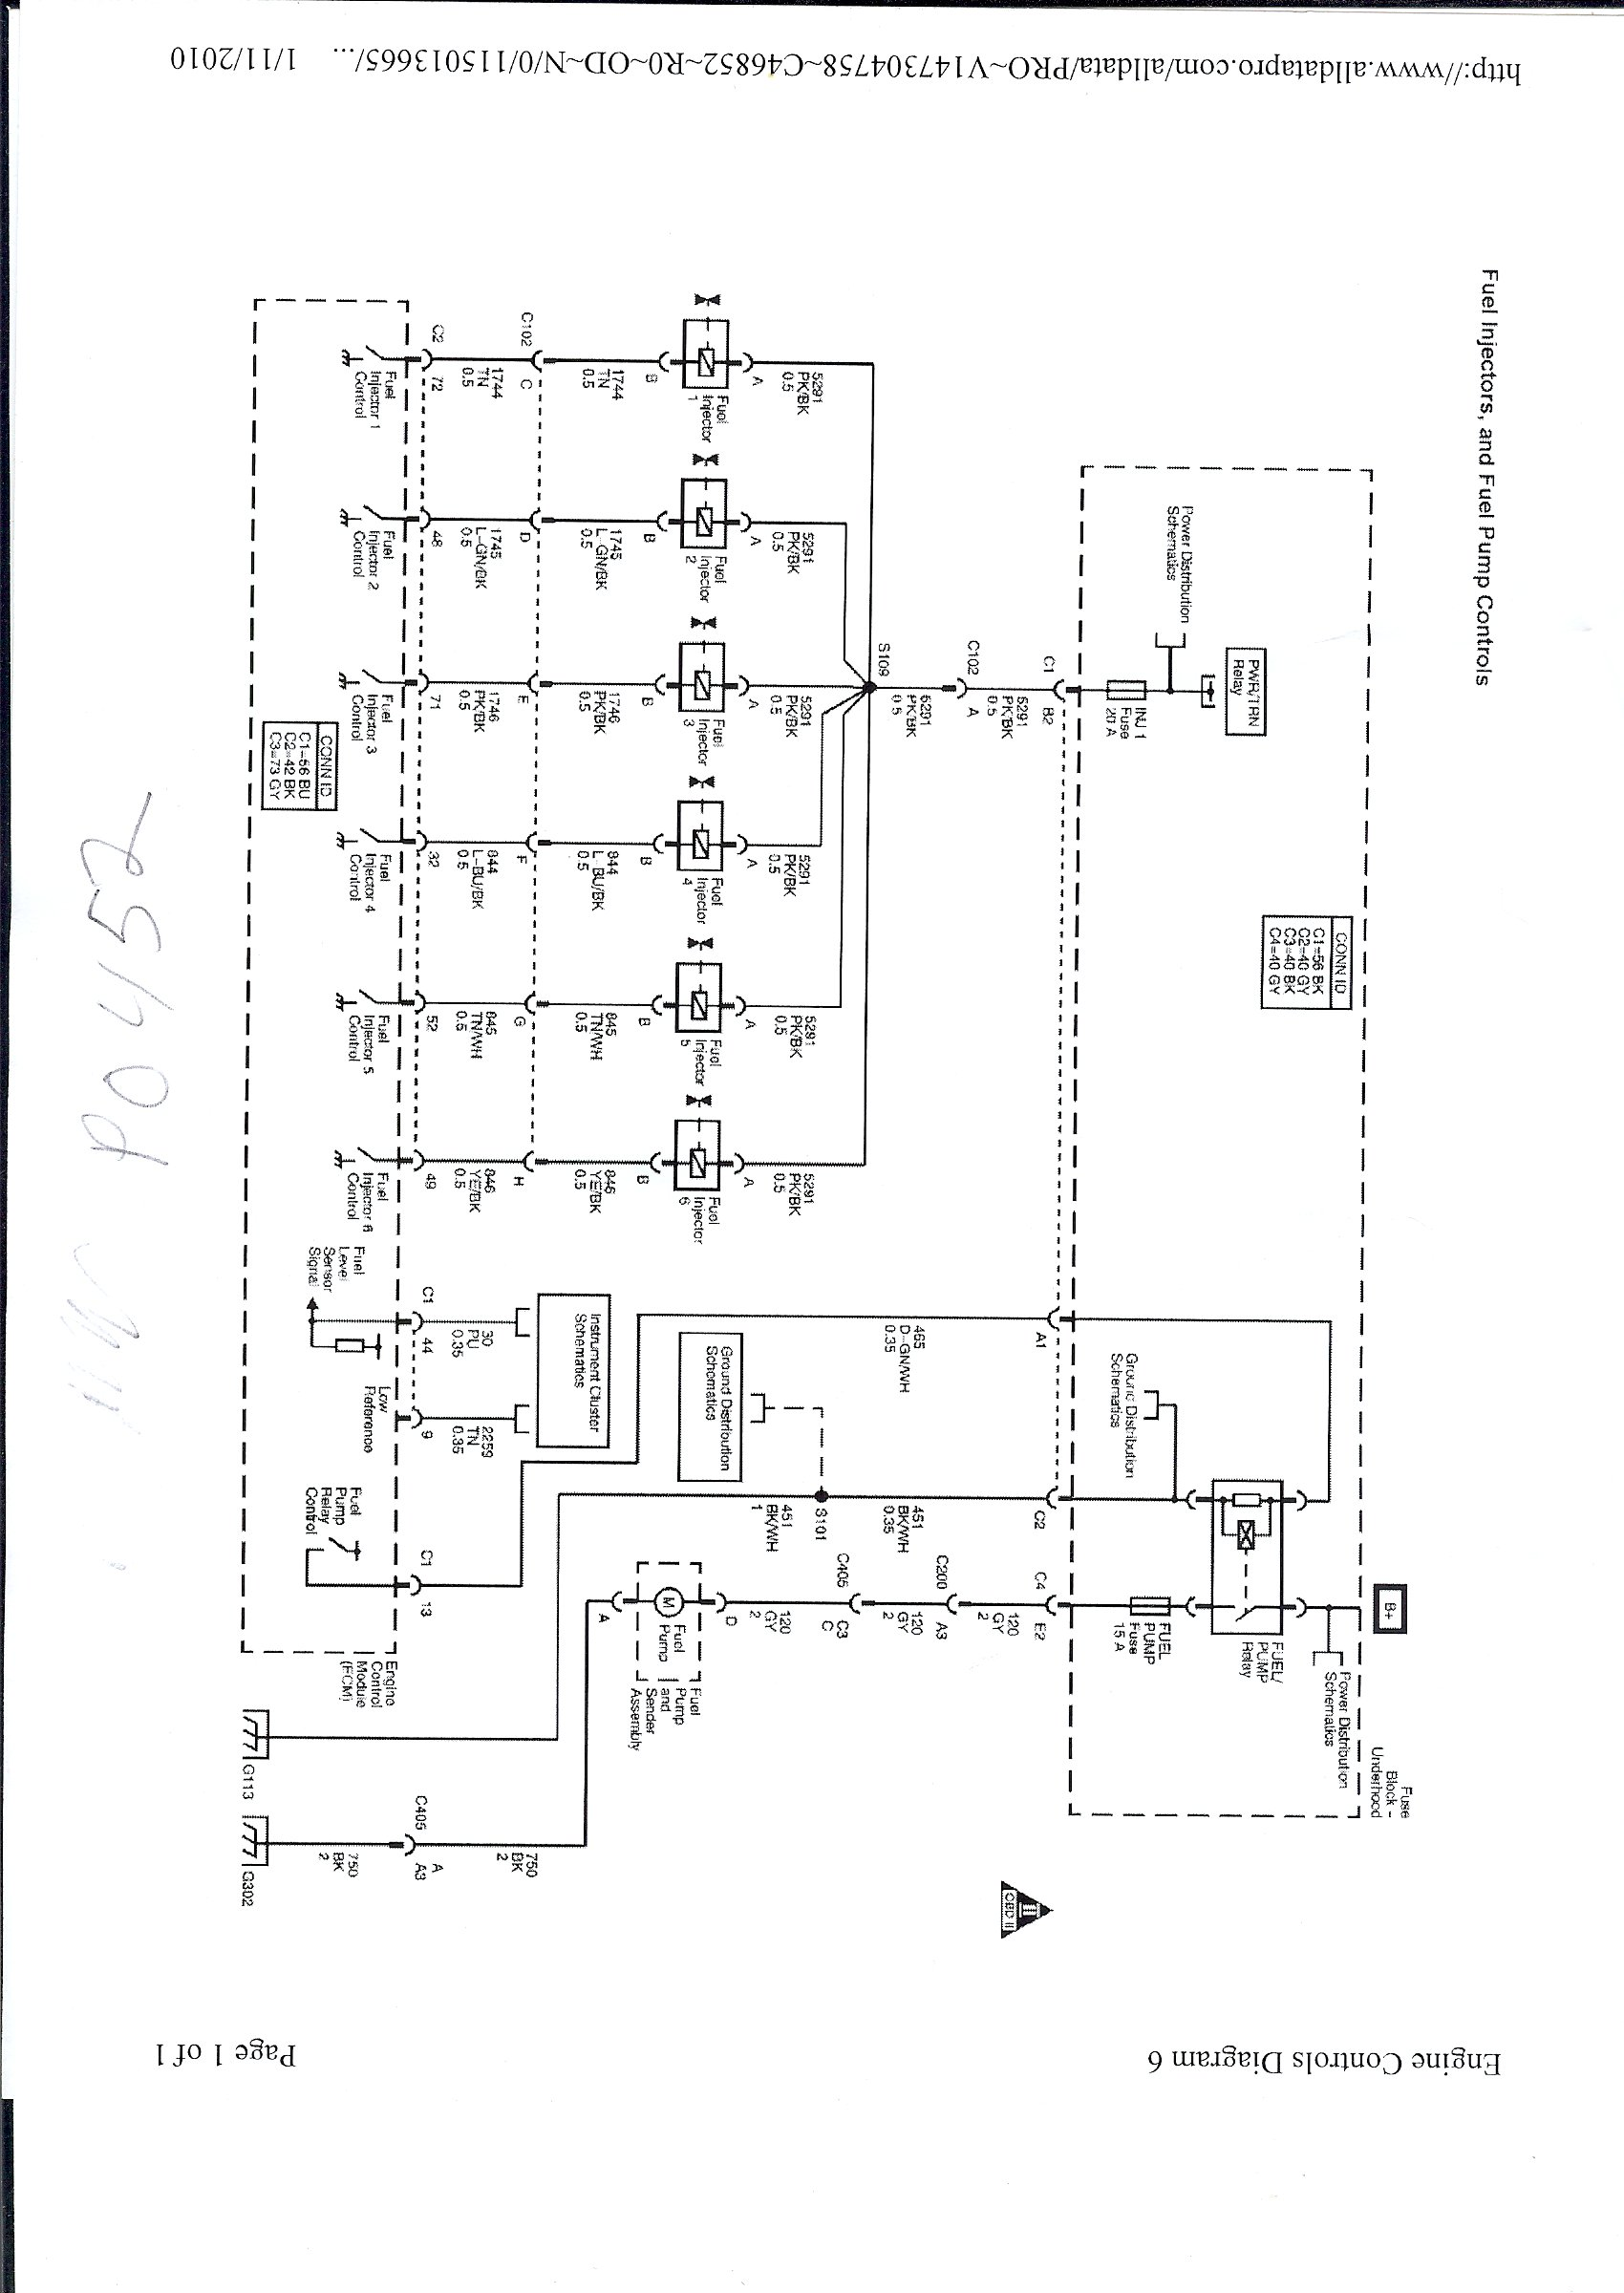 2010 01 13_020441_wiring_diagram 2006 chevy impala fuel pump went out replaced pump still will 2006 impala fuse box diagram at panicattacktreatment.co